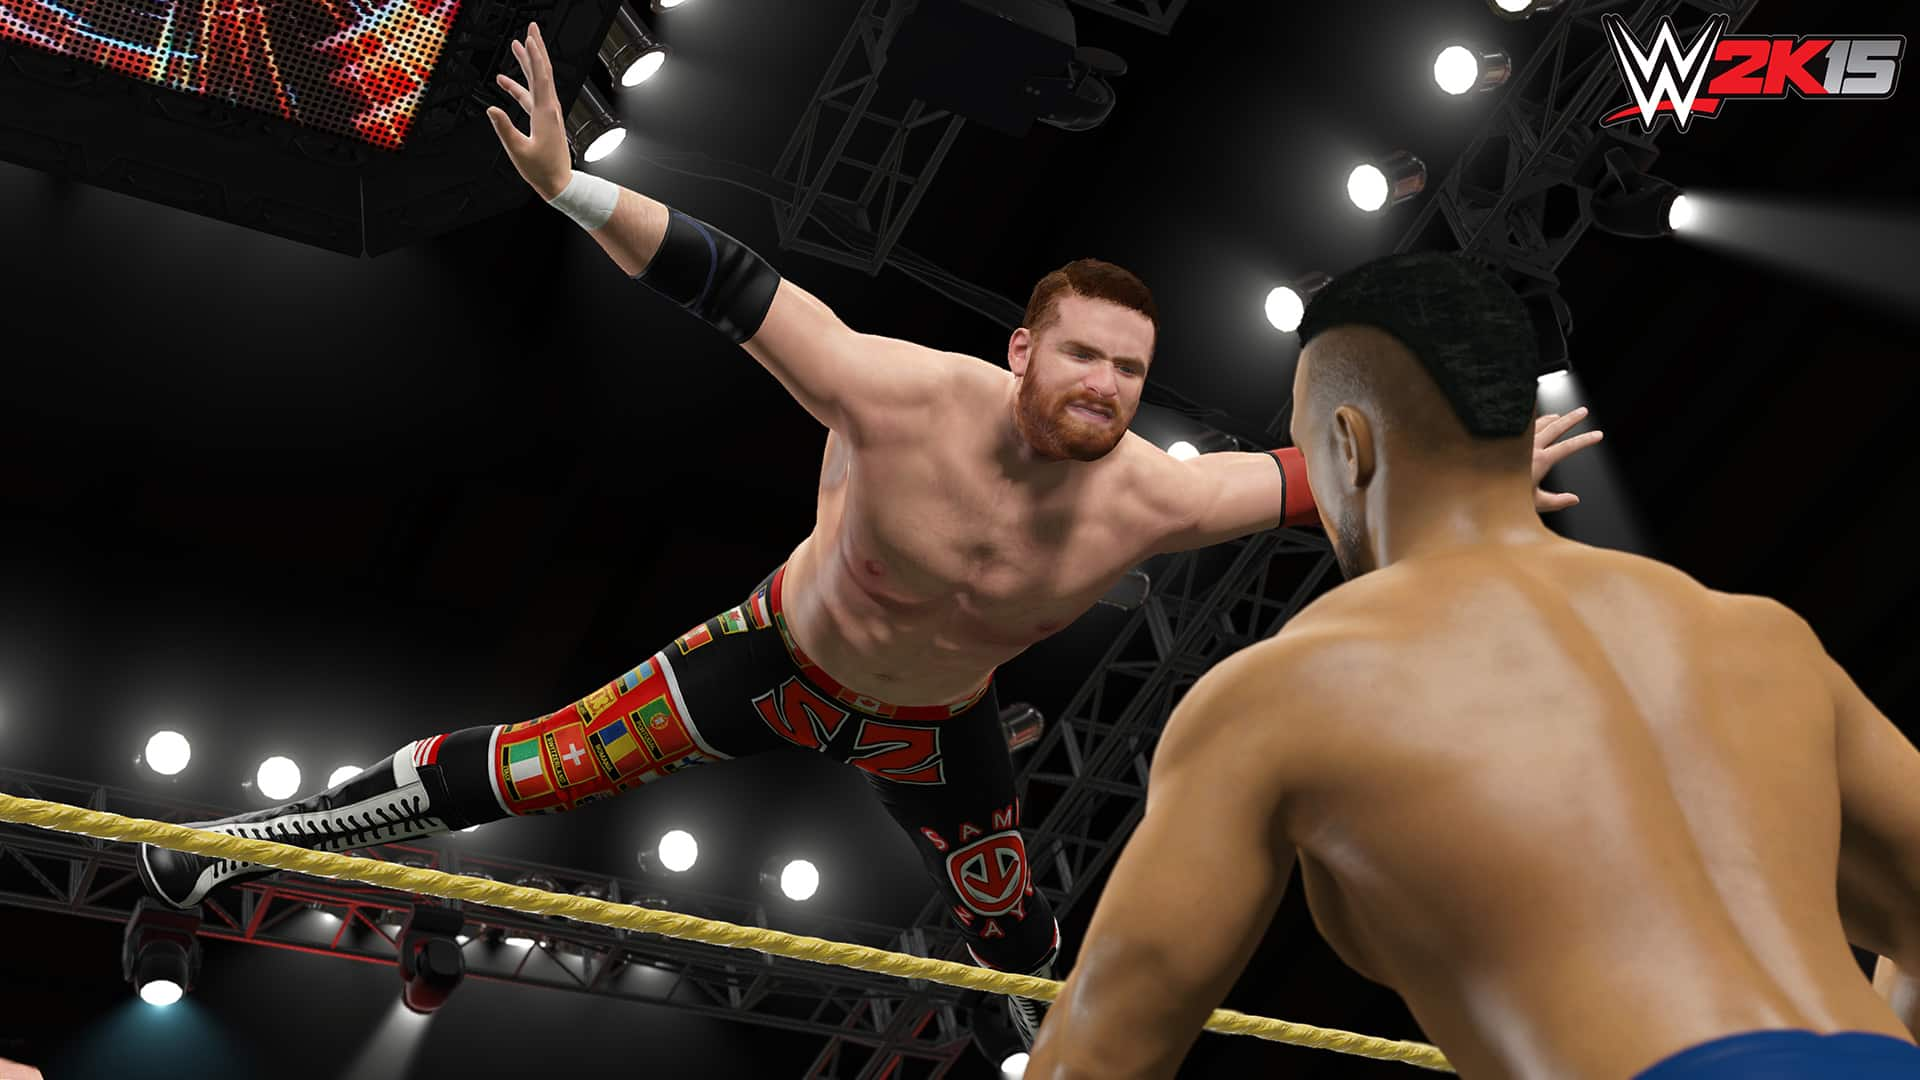 WWE 2K15 Download free game pc - Install-Game